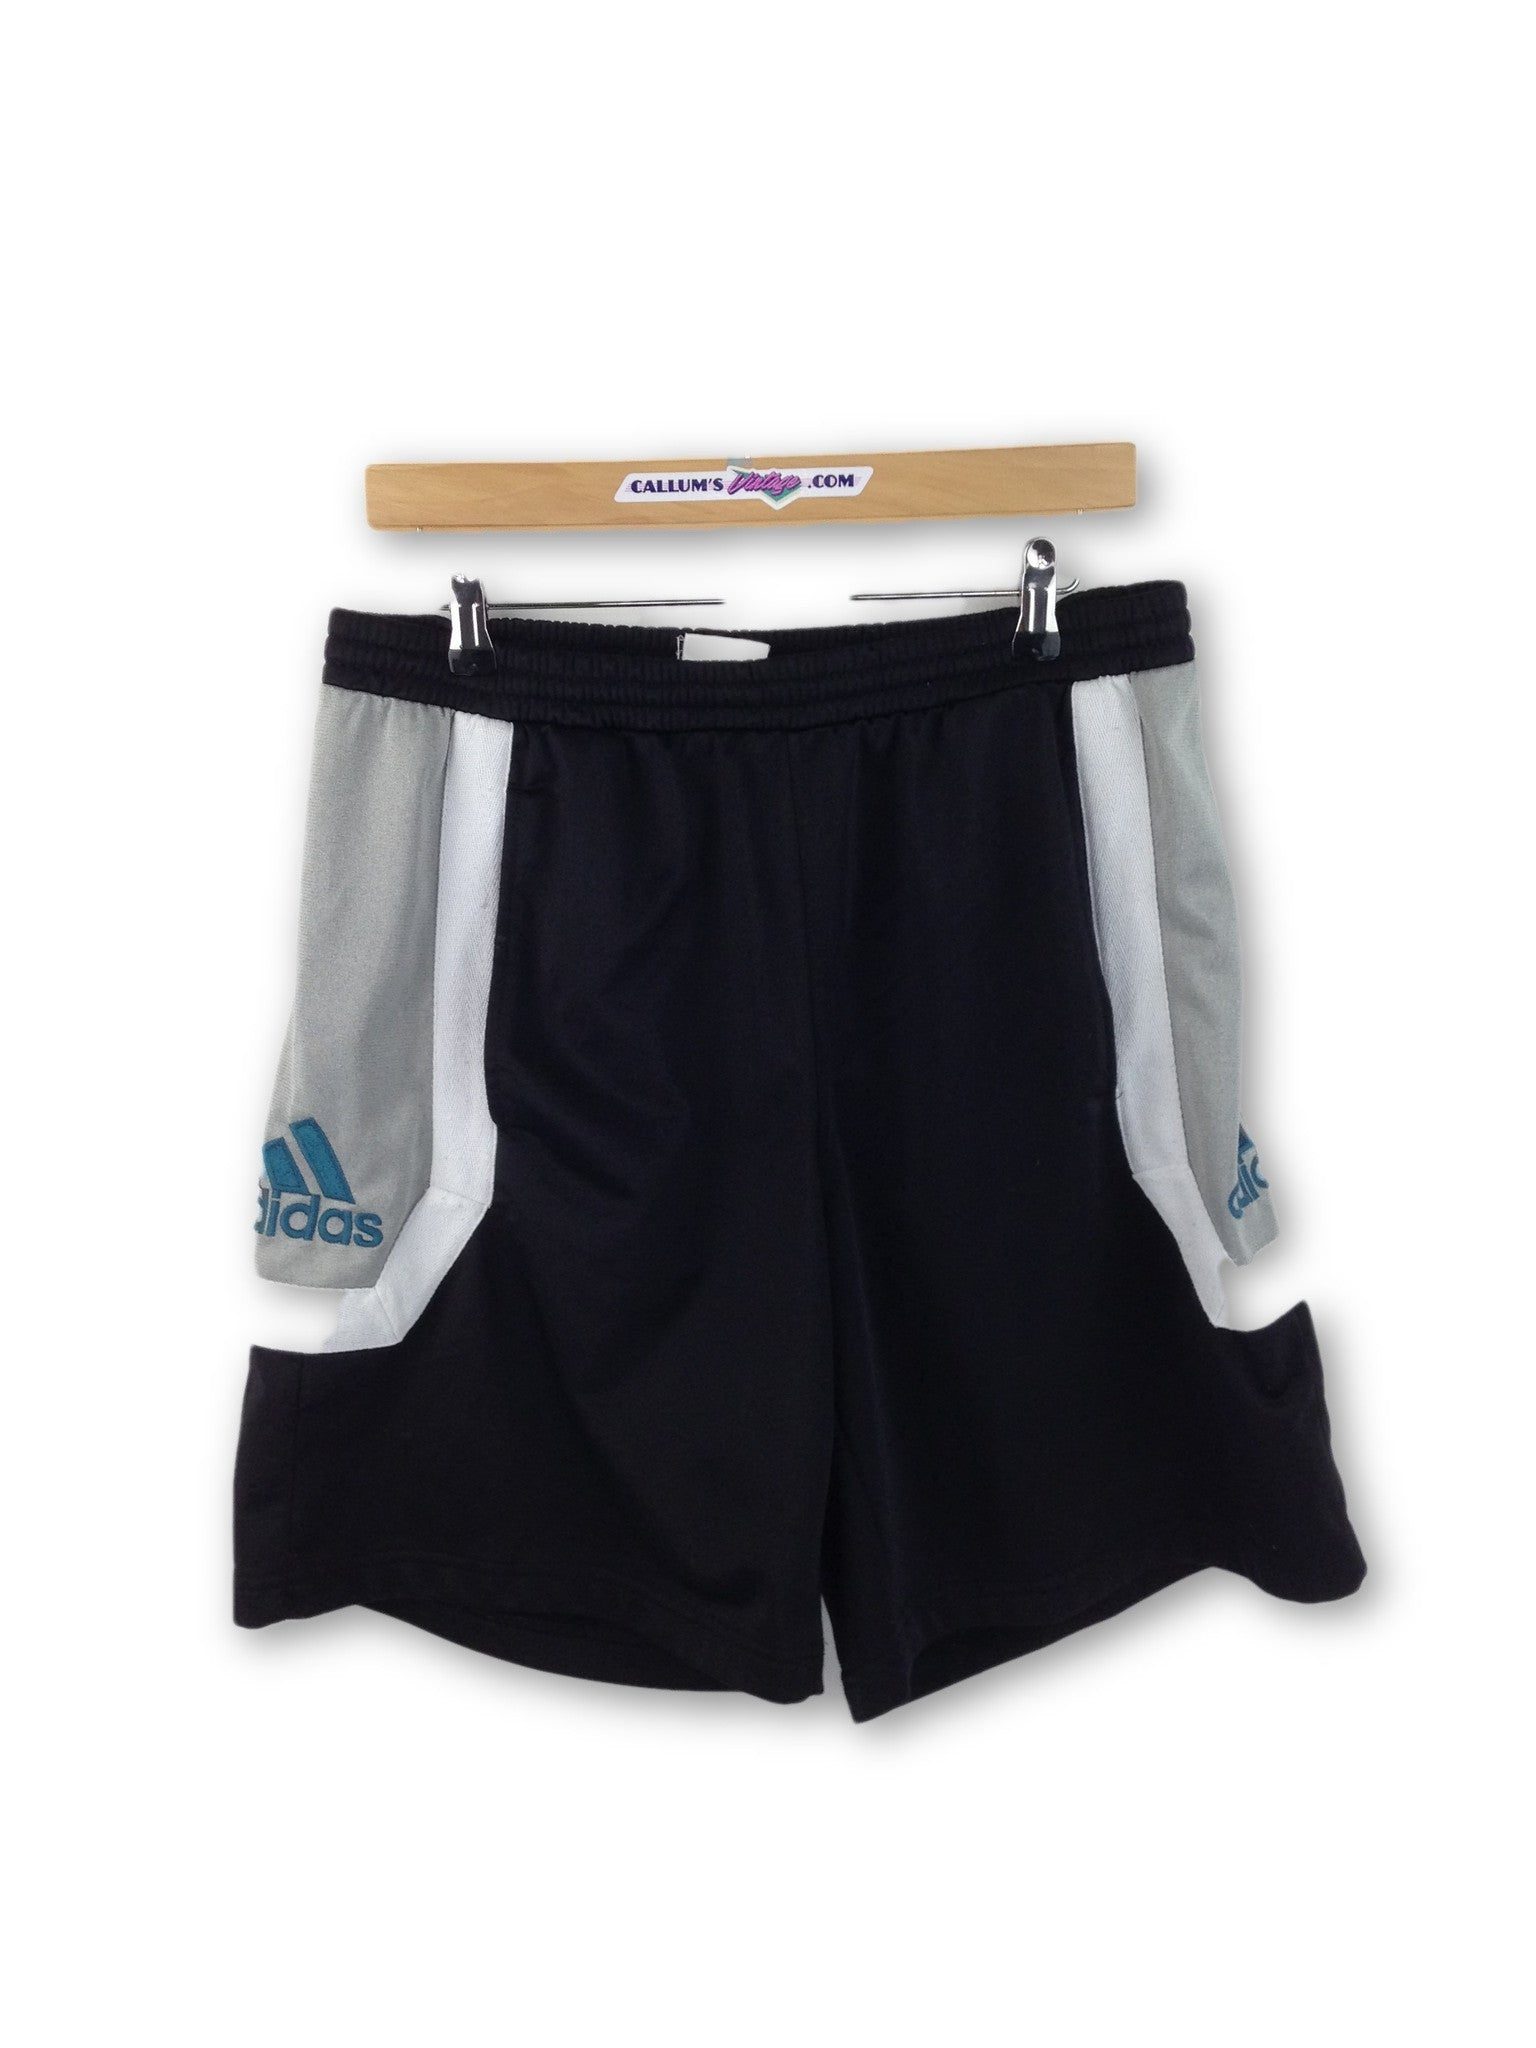 9a30bced123bc5 Adidas Logo Shorts Large - finderskeepers - 1